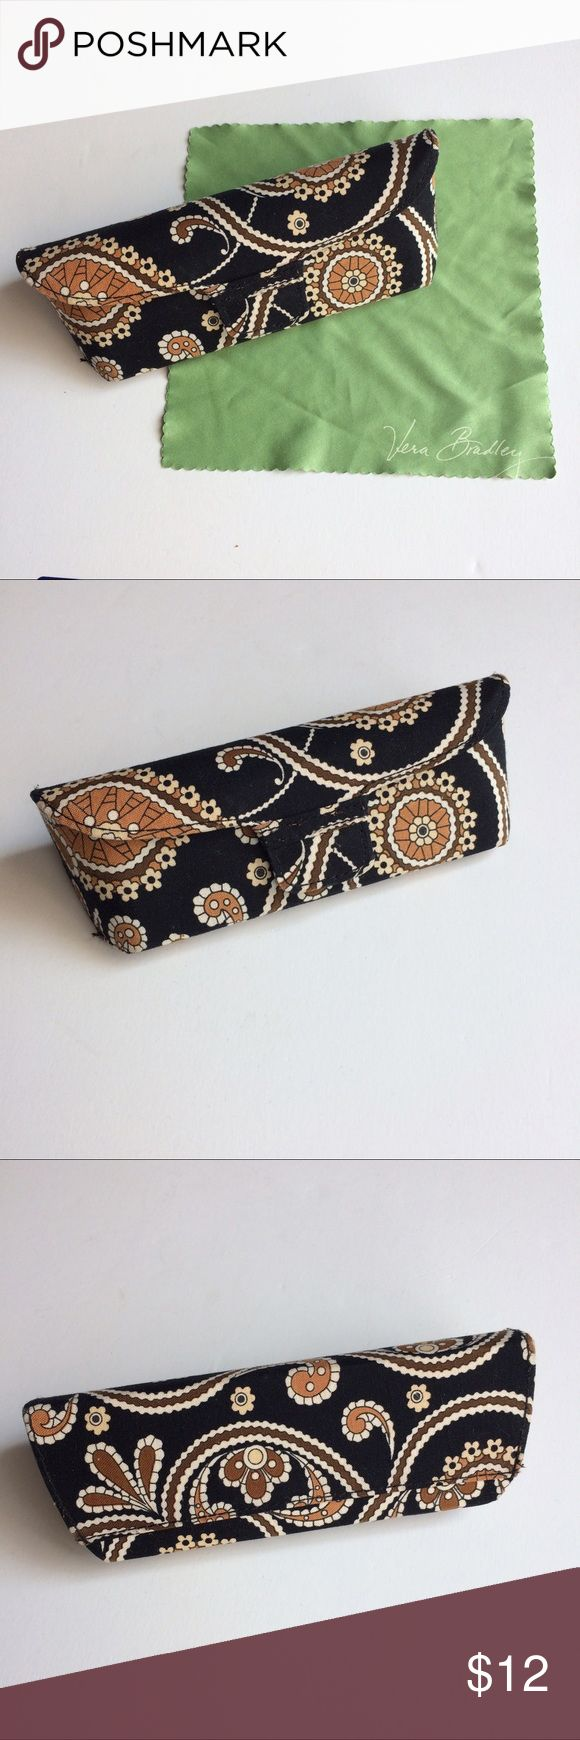 """Vera Bradley Caffe Latte eyeglass case For sale is an eyeglass case by Vera Bradley.  Pattern is Caffe Latte in gorgeous shades of black brown tan and creme.  Case is covered in cotton fabric.  Structured shell with a magnetic closure.  Always kept my glasses safe while in my purse with other items.  Comes with a handy cleaning cloth too!  Measurements are 6.5"""" L x 1 3/4"""" W x 2.5"""" H.  Comes from smoke free and pet free home.  Thanks for looking! Vera Bradley Accessories Glasses"""